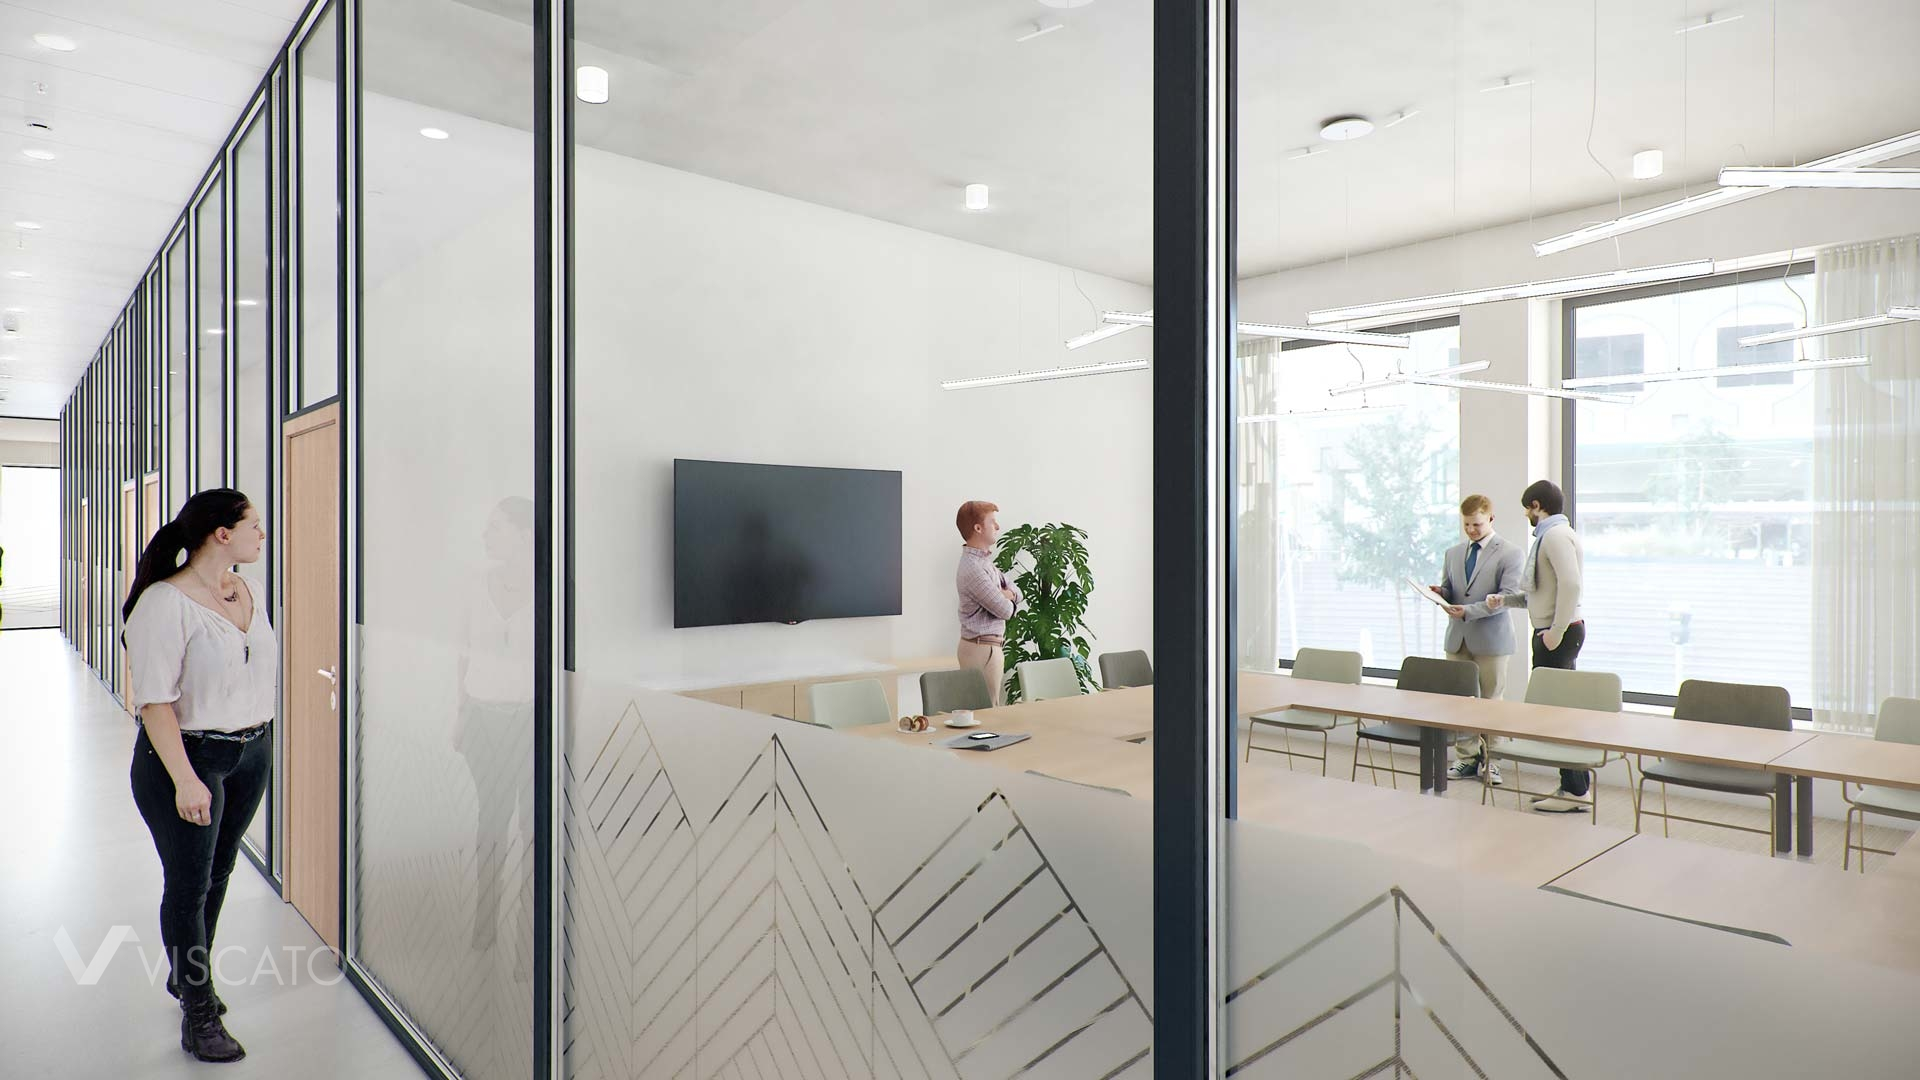 Office conference room with glass walls, Viscato